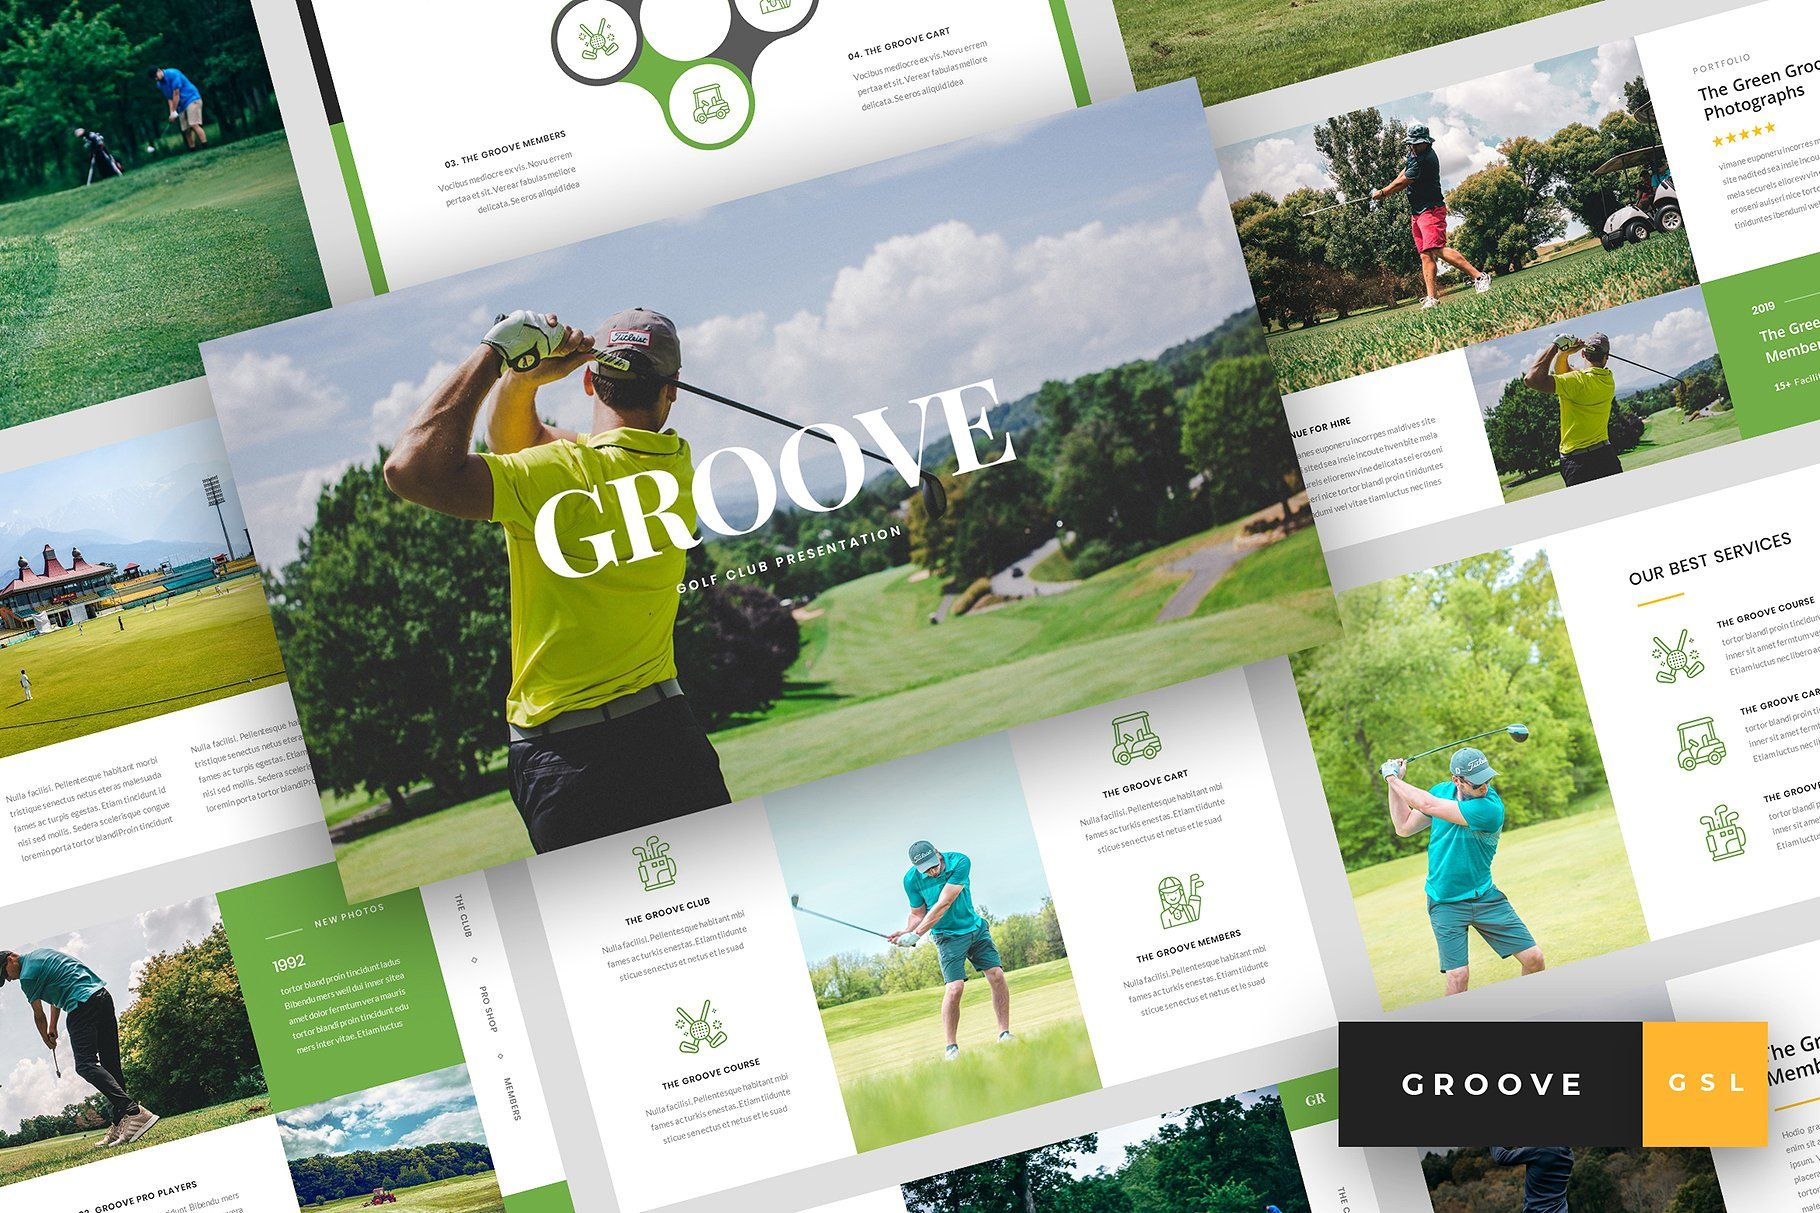 Groove Golf Club Google Slides By Stringlabs On